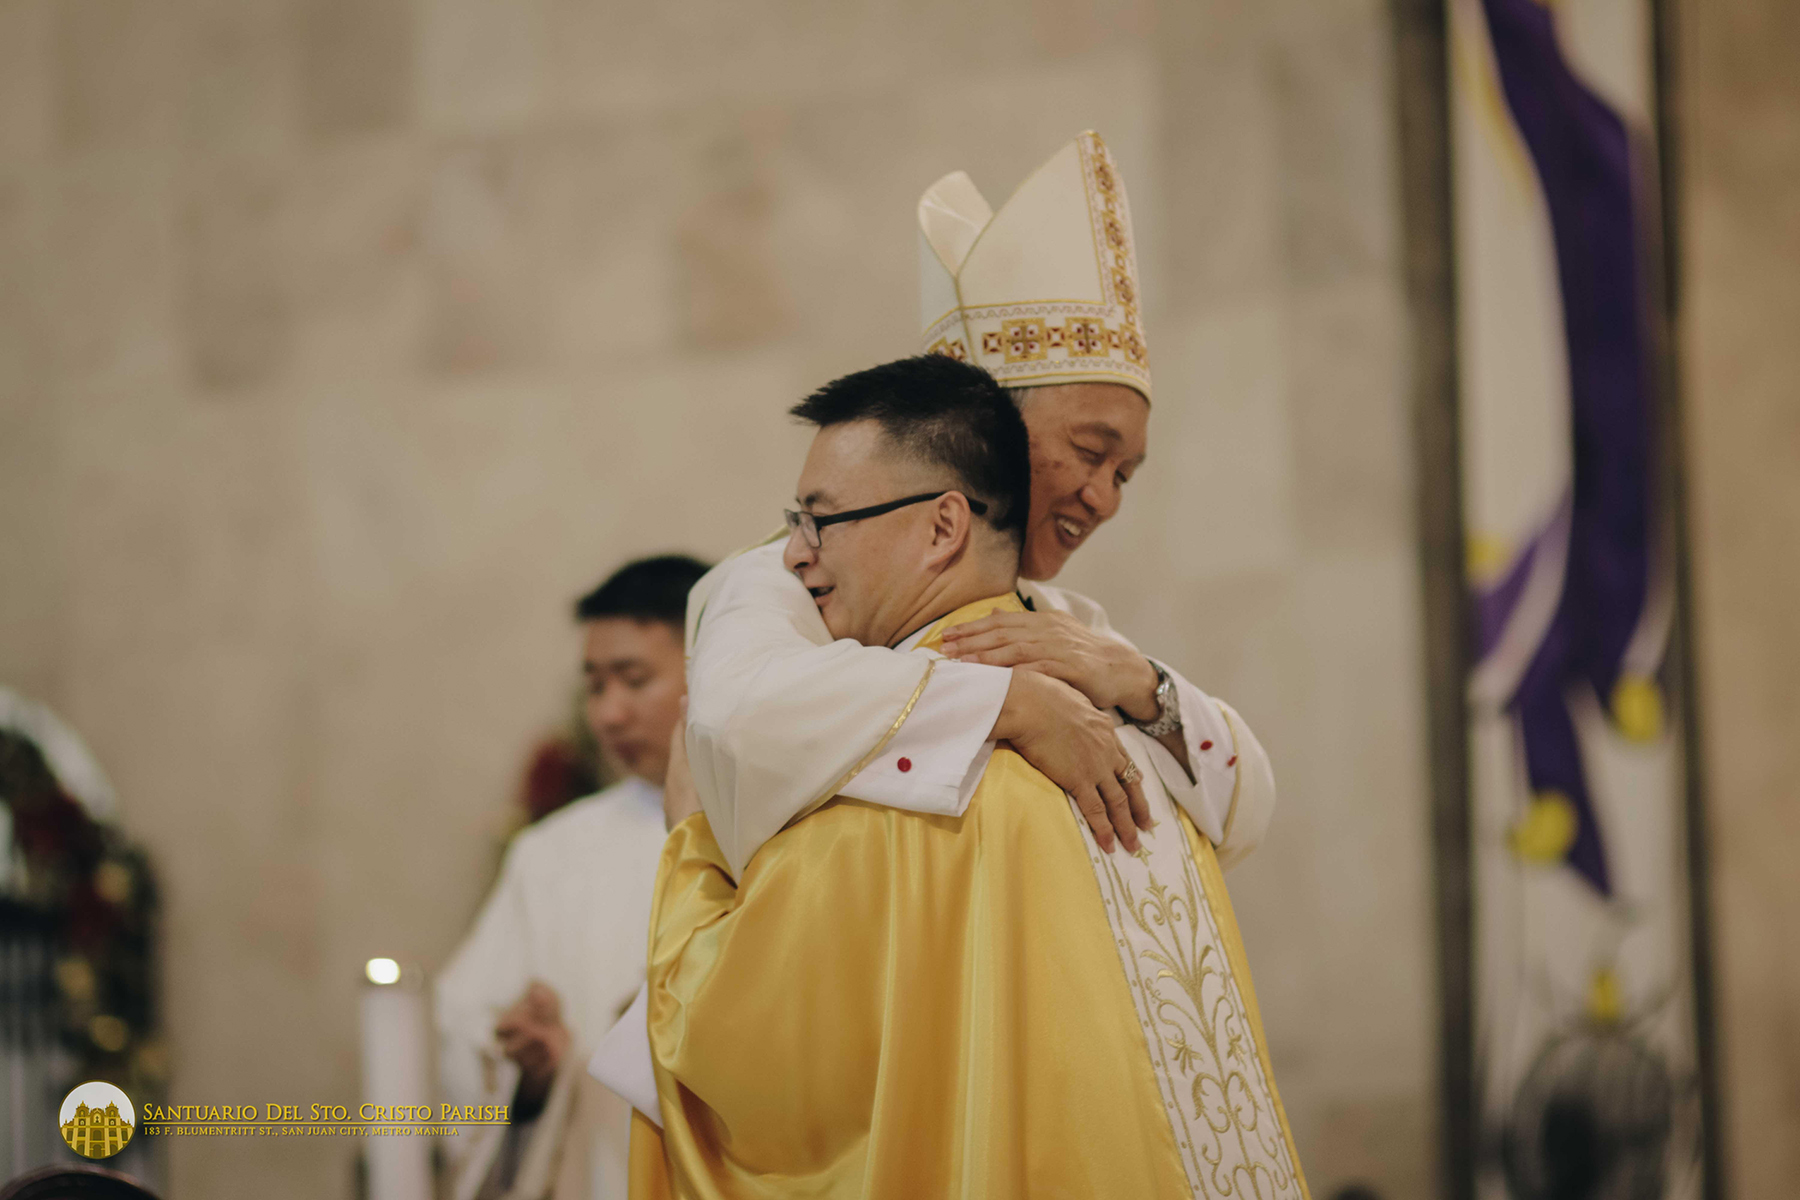 A new Priest for the Province of Rosario